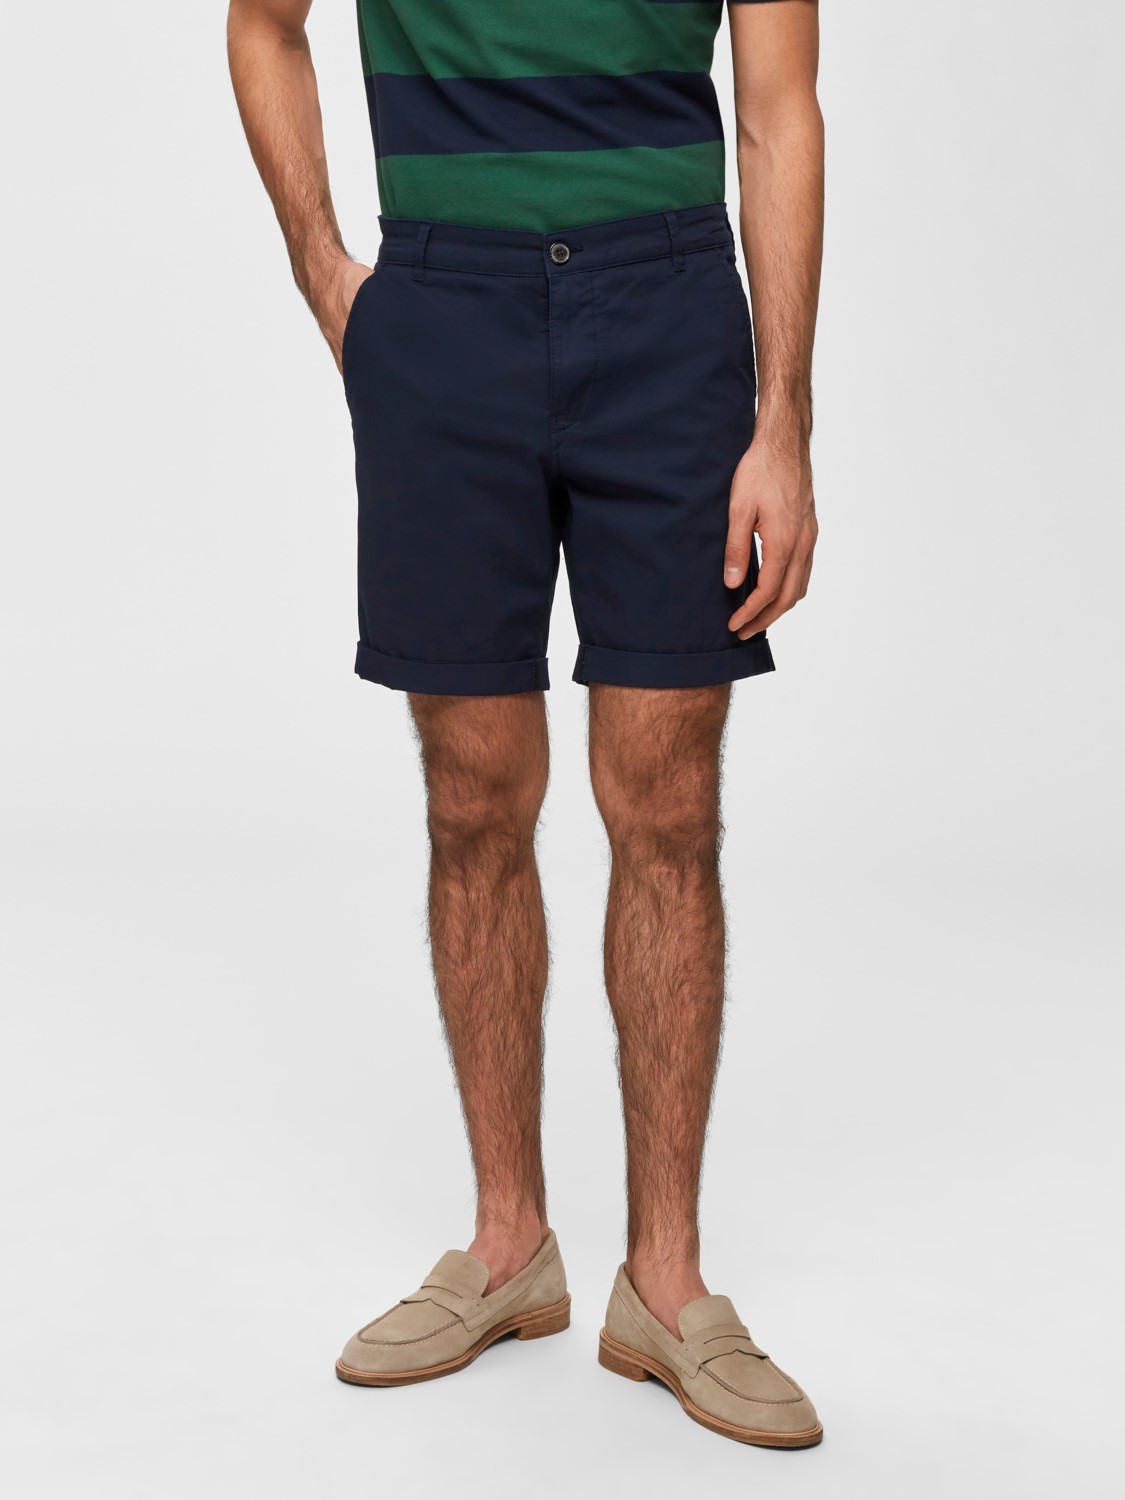 Selected - Chino Shorts Dark Sapphire | GATE 36 Hobro